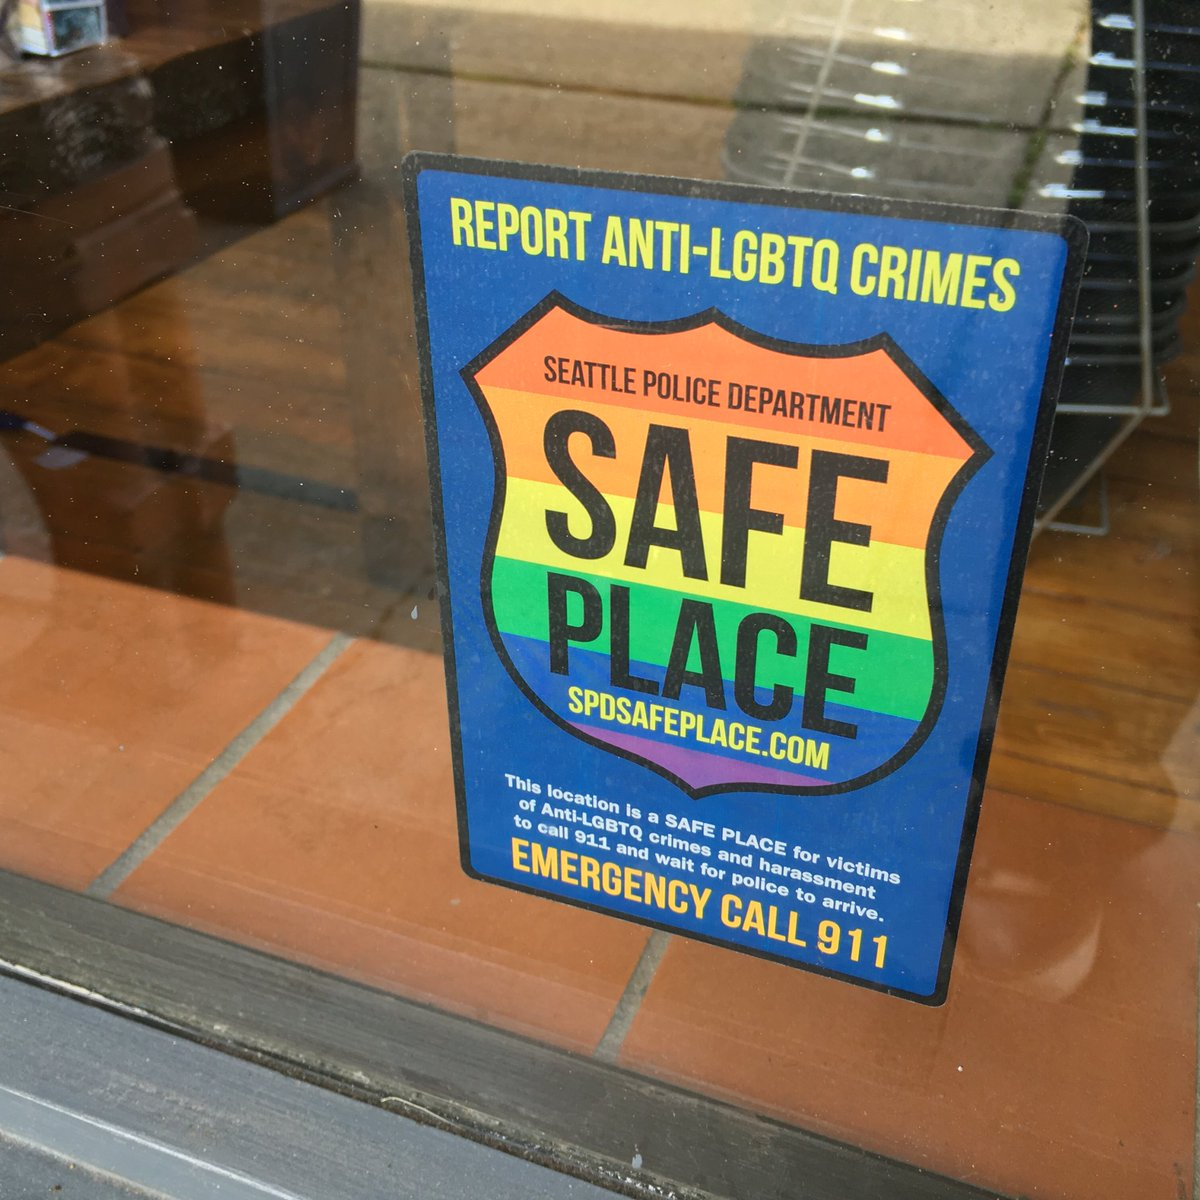 We're proud to support the @SeattlePD Safe Place program! Head to https://t.co/nZsWu9JaH5 for more info. <3 https://t.co/Hh3b3W6DNV